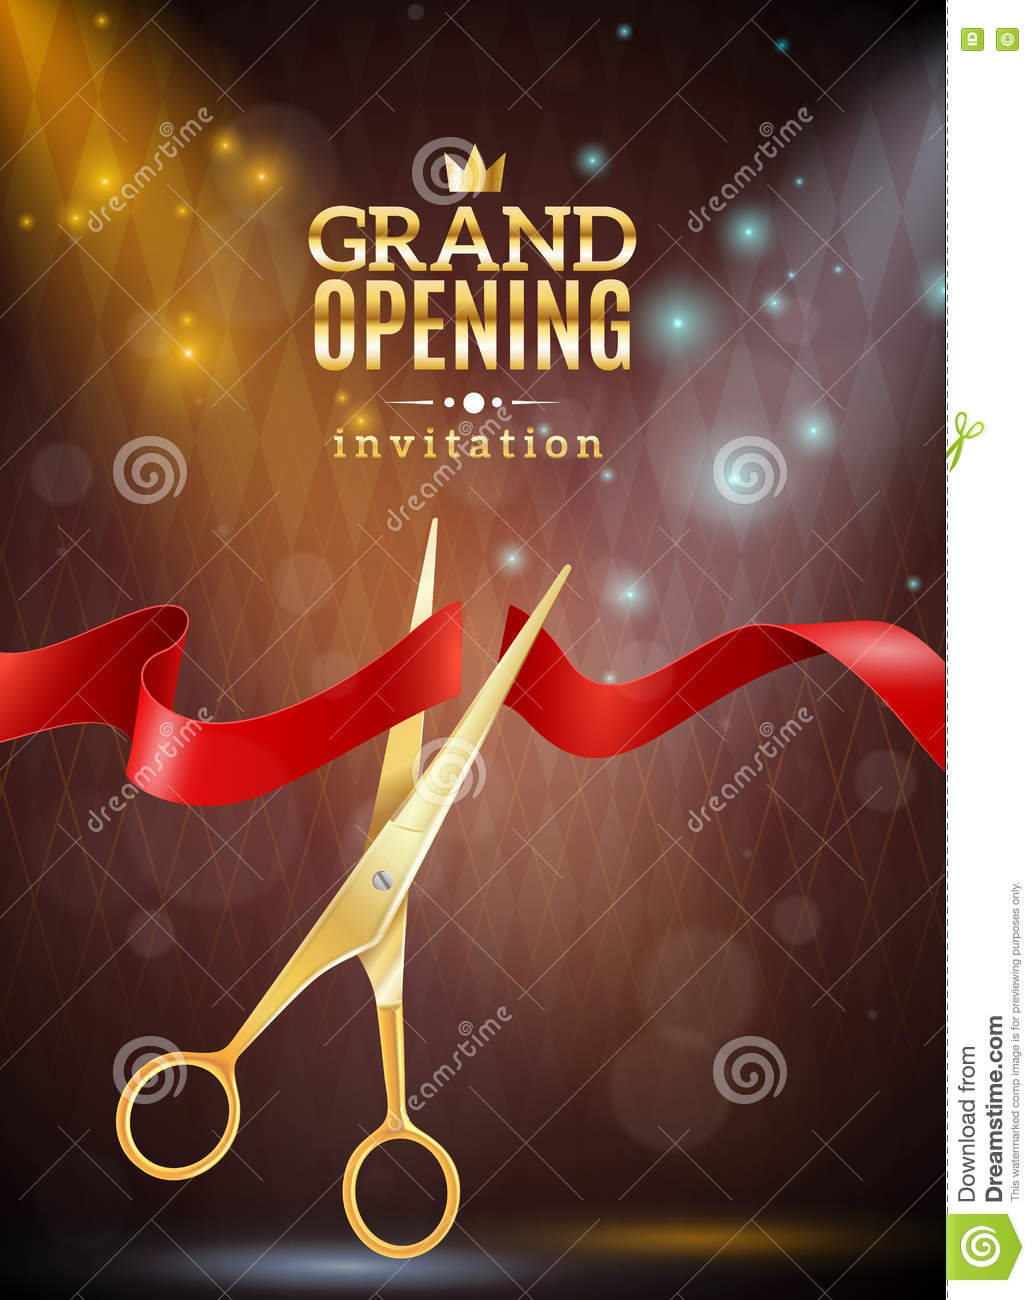 Grand Opening Background Illustration Stock Vector - Image ...